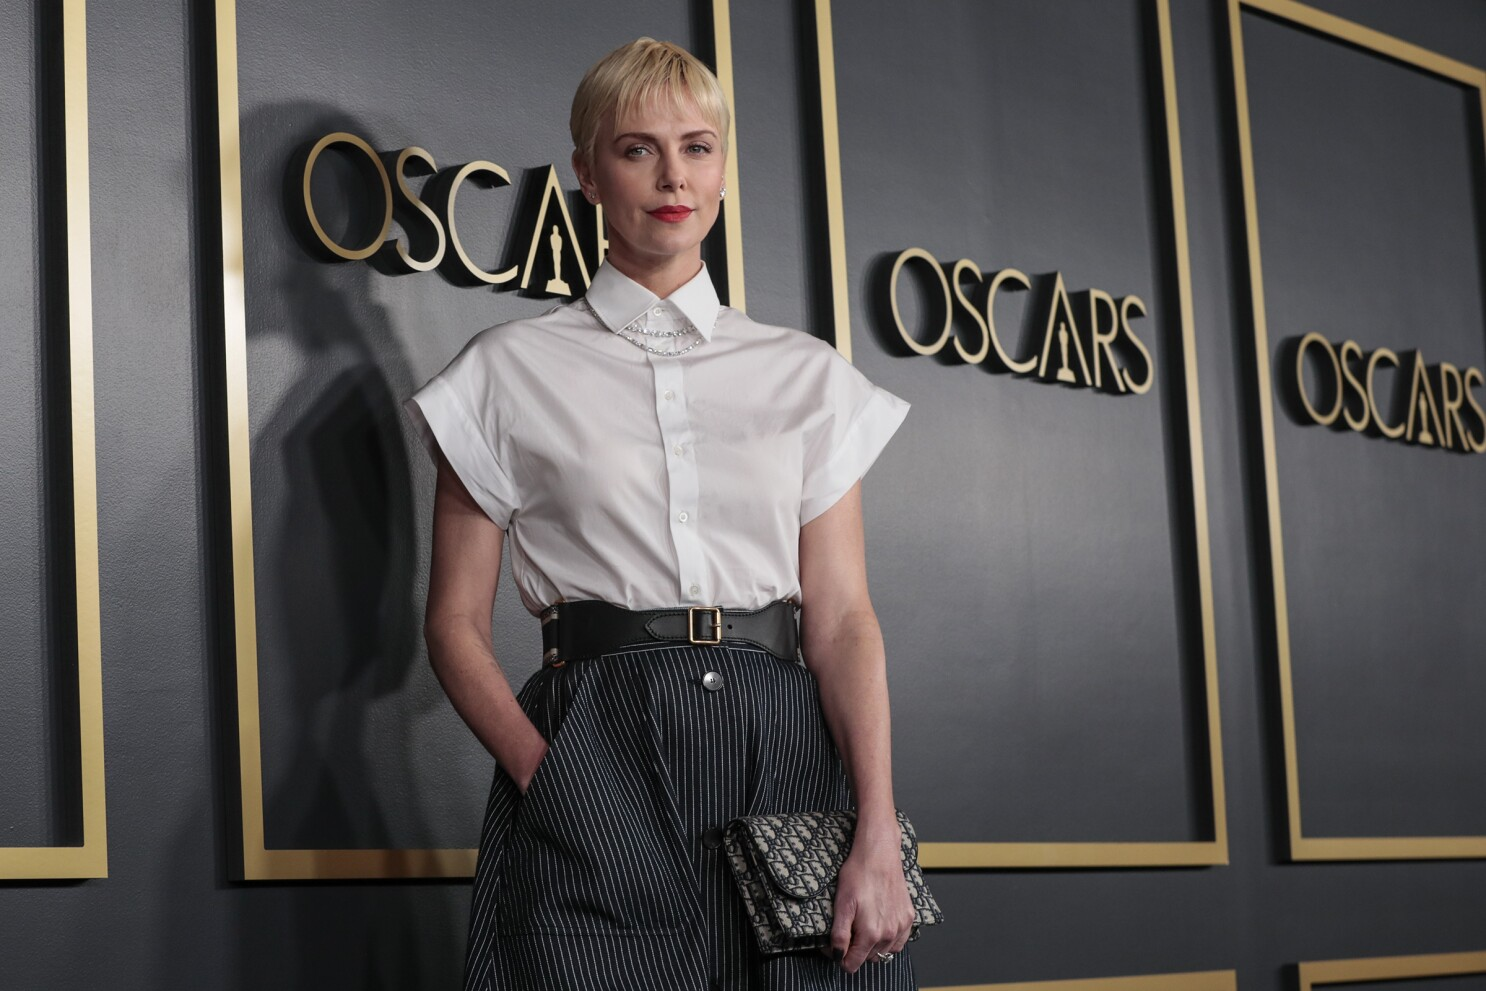 Oscars 2020 Charlize Theron Goes For The Fashion Gold Los Angeles Times